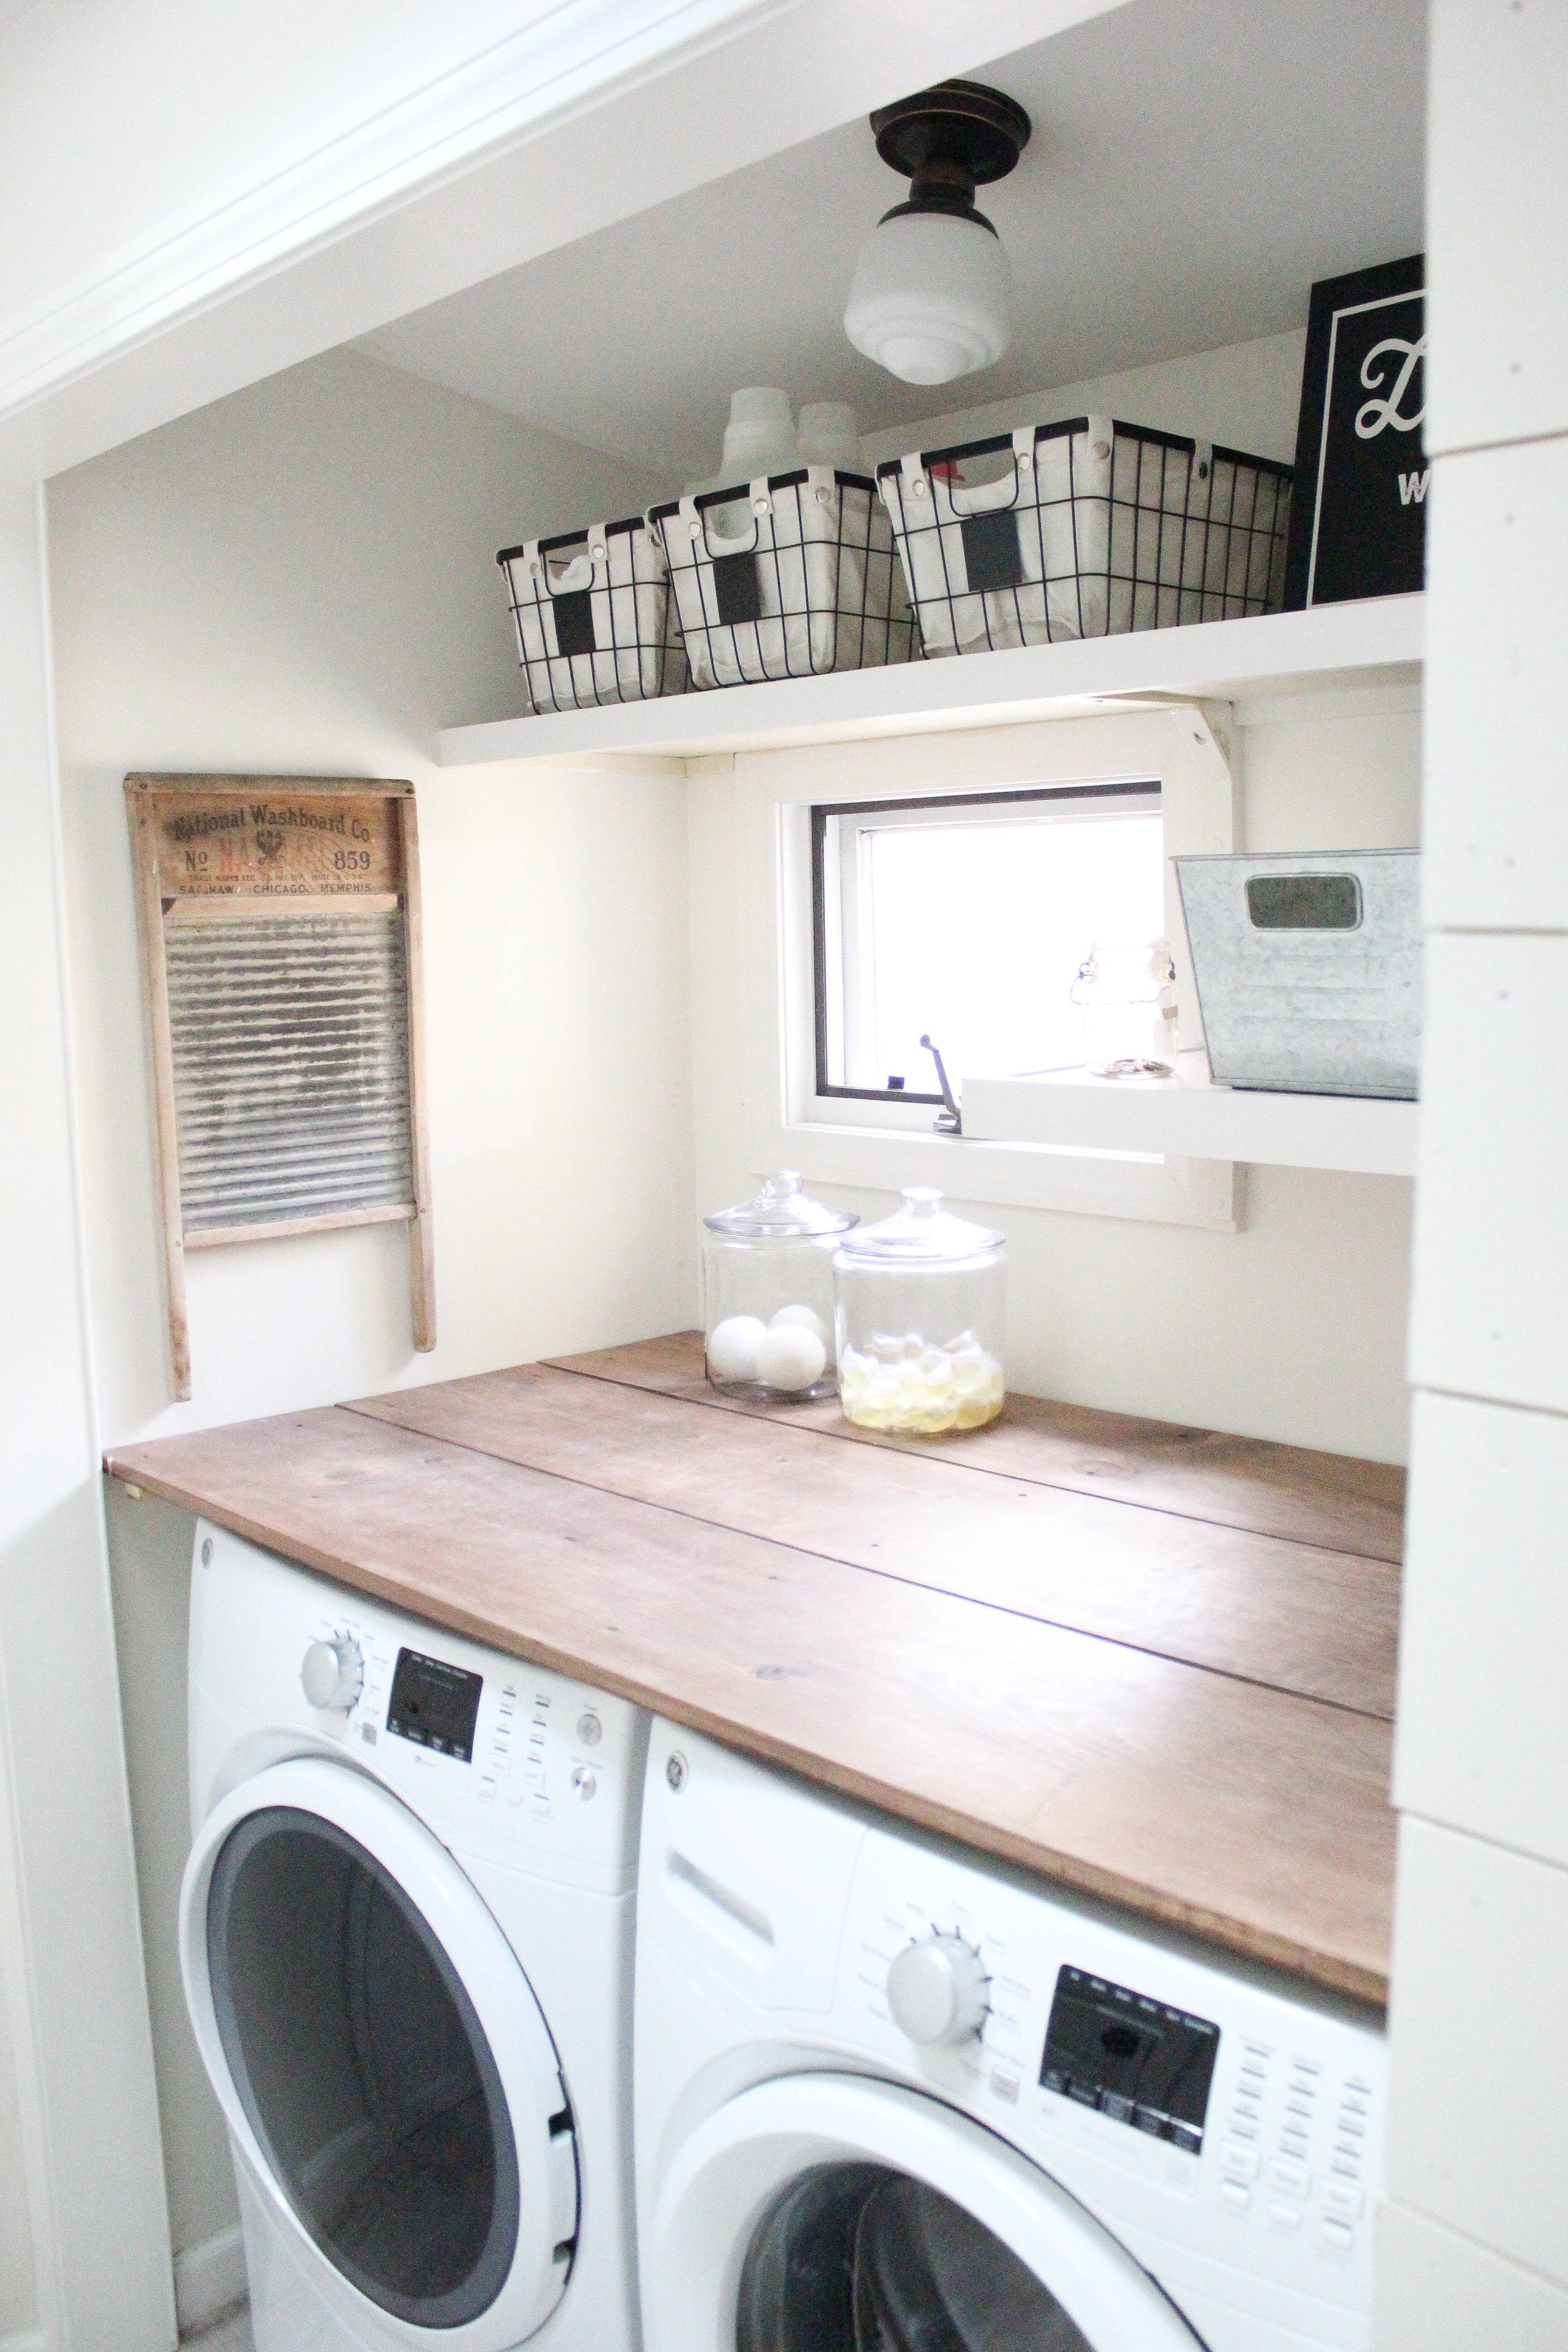 Home Farmhouse Laundry Room Wood Countertops Pinterest Farmhouse Laundry Rooms Laundry